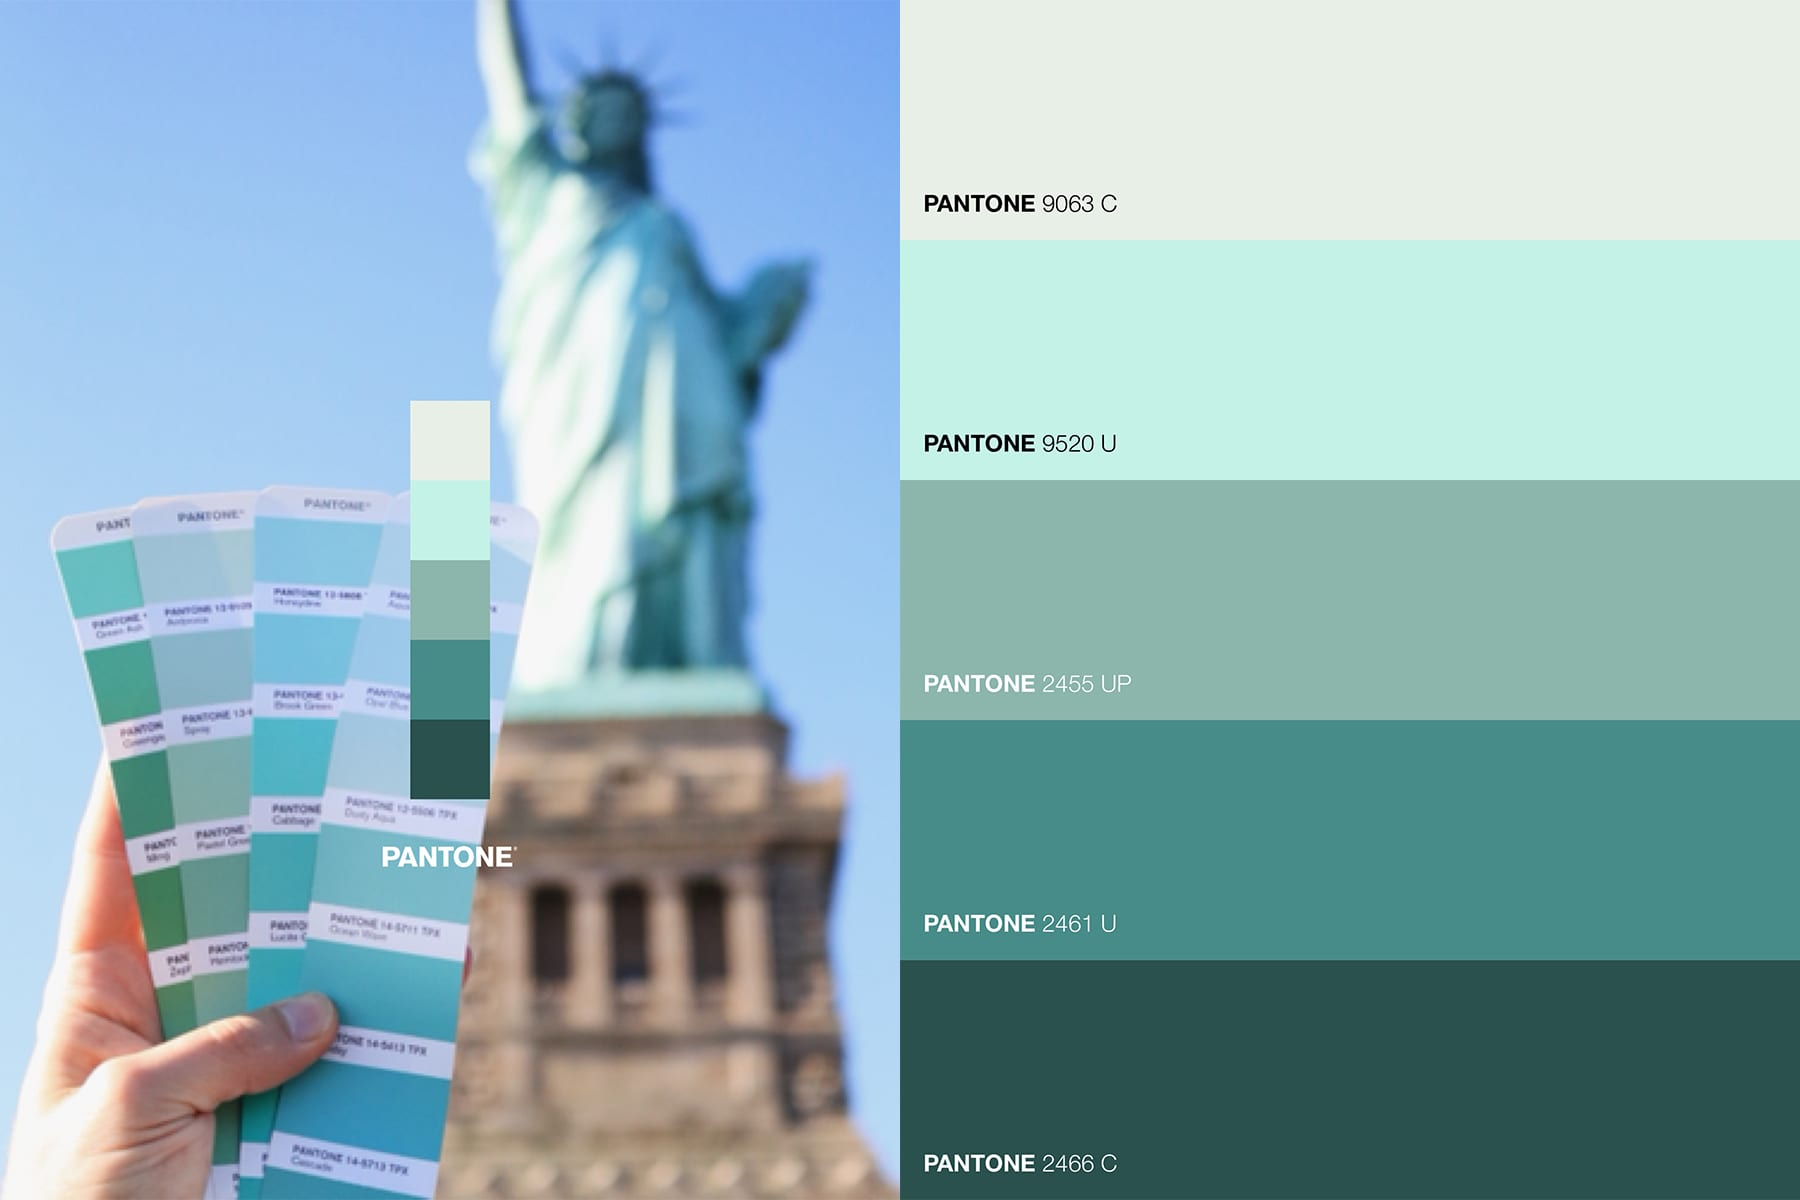 08-NY-journey-ladyliberty21-pantone.jpg